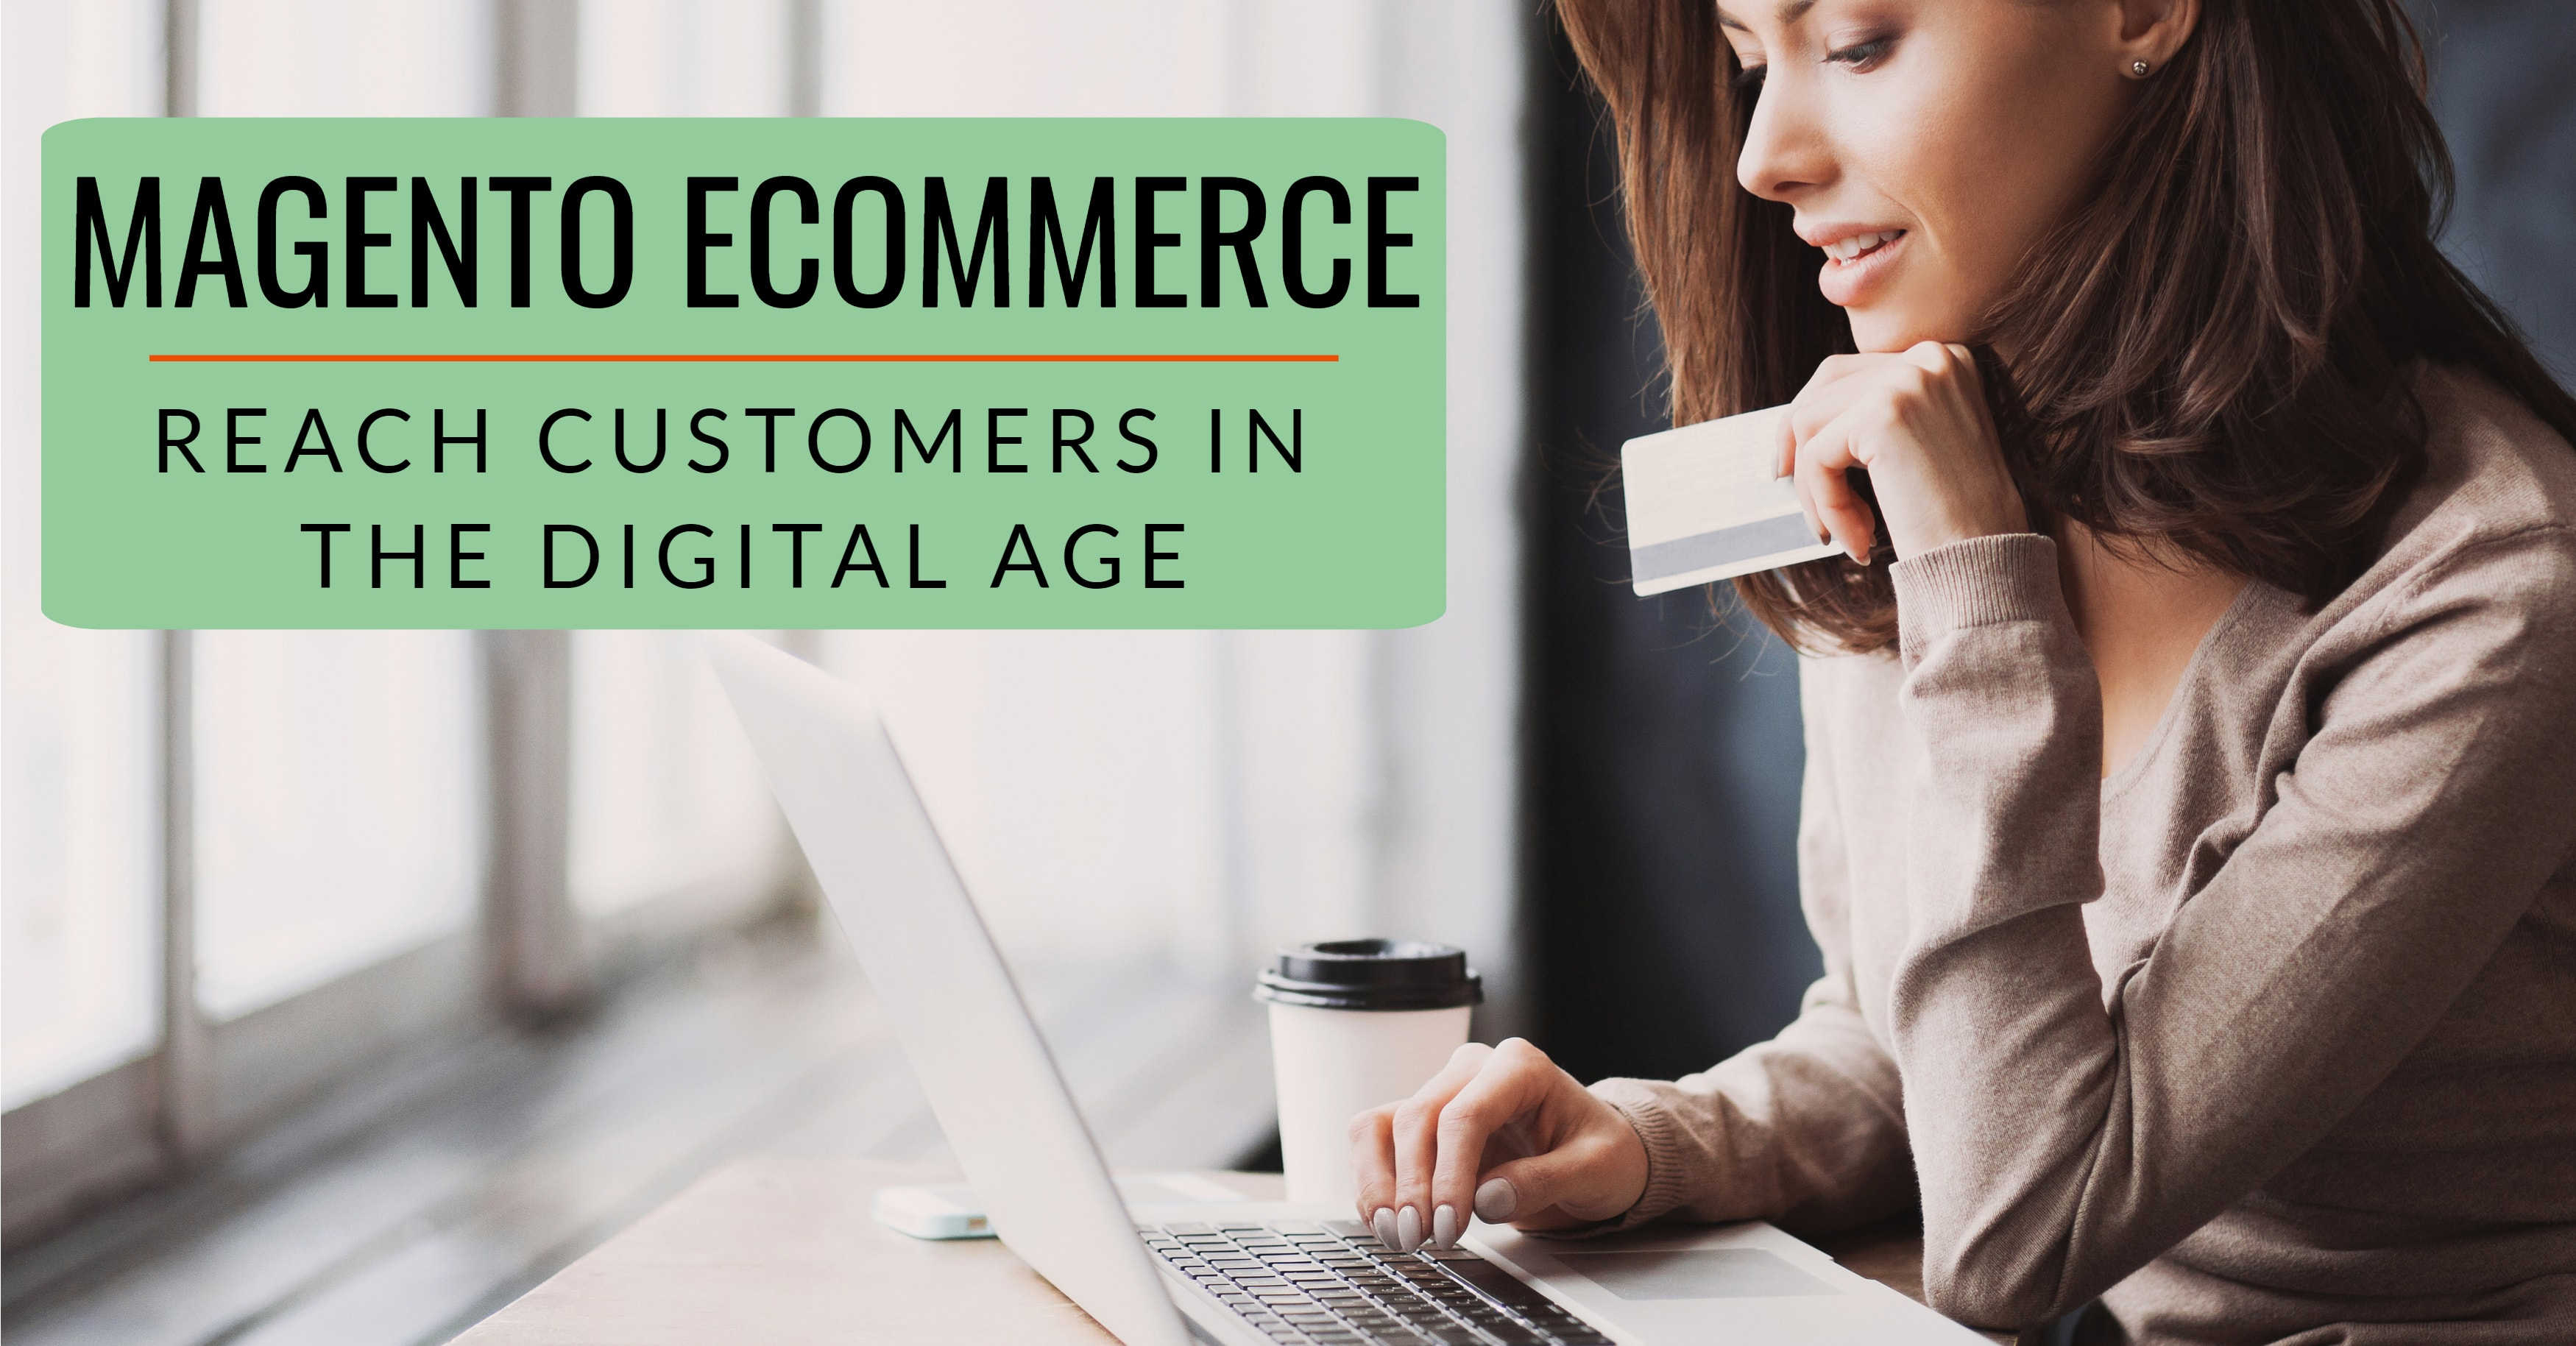 Magento eCommerce: Reach Customers in the Digital Age